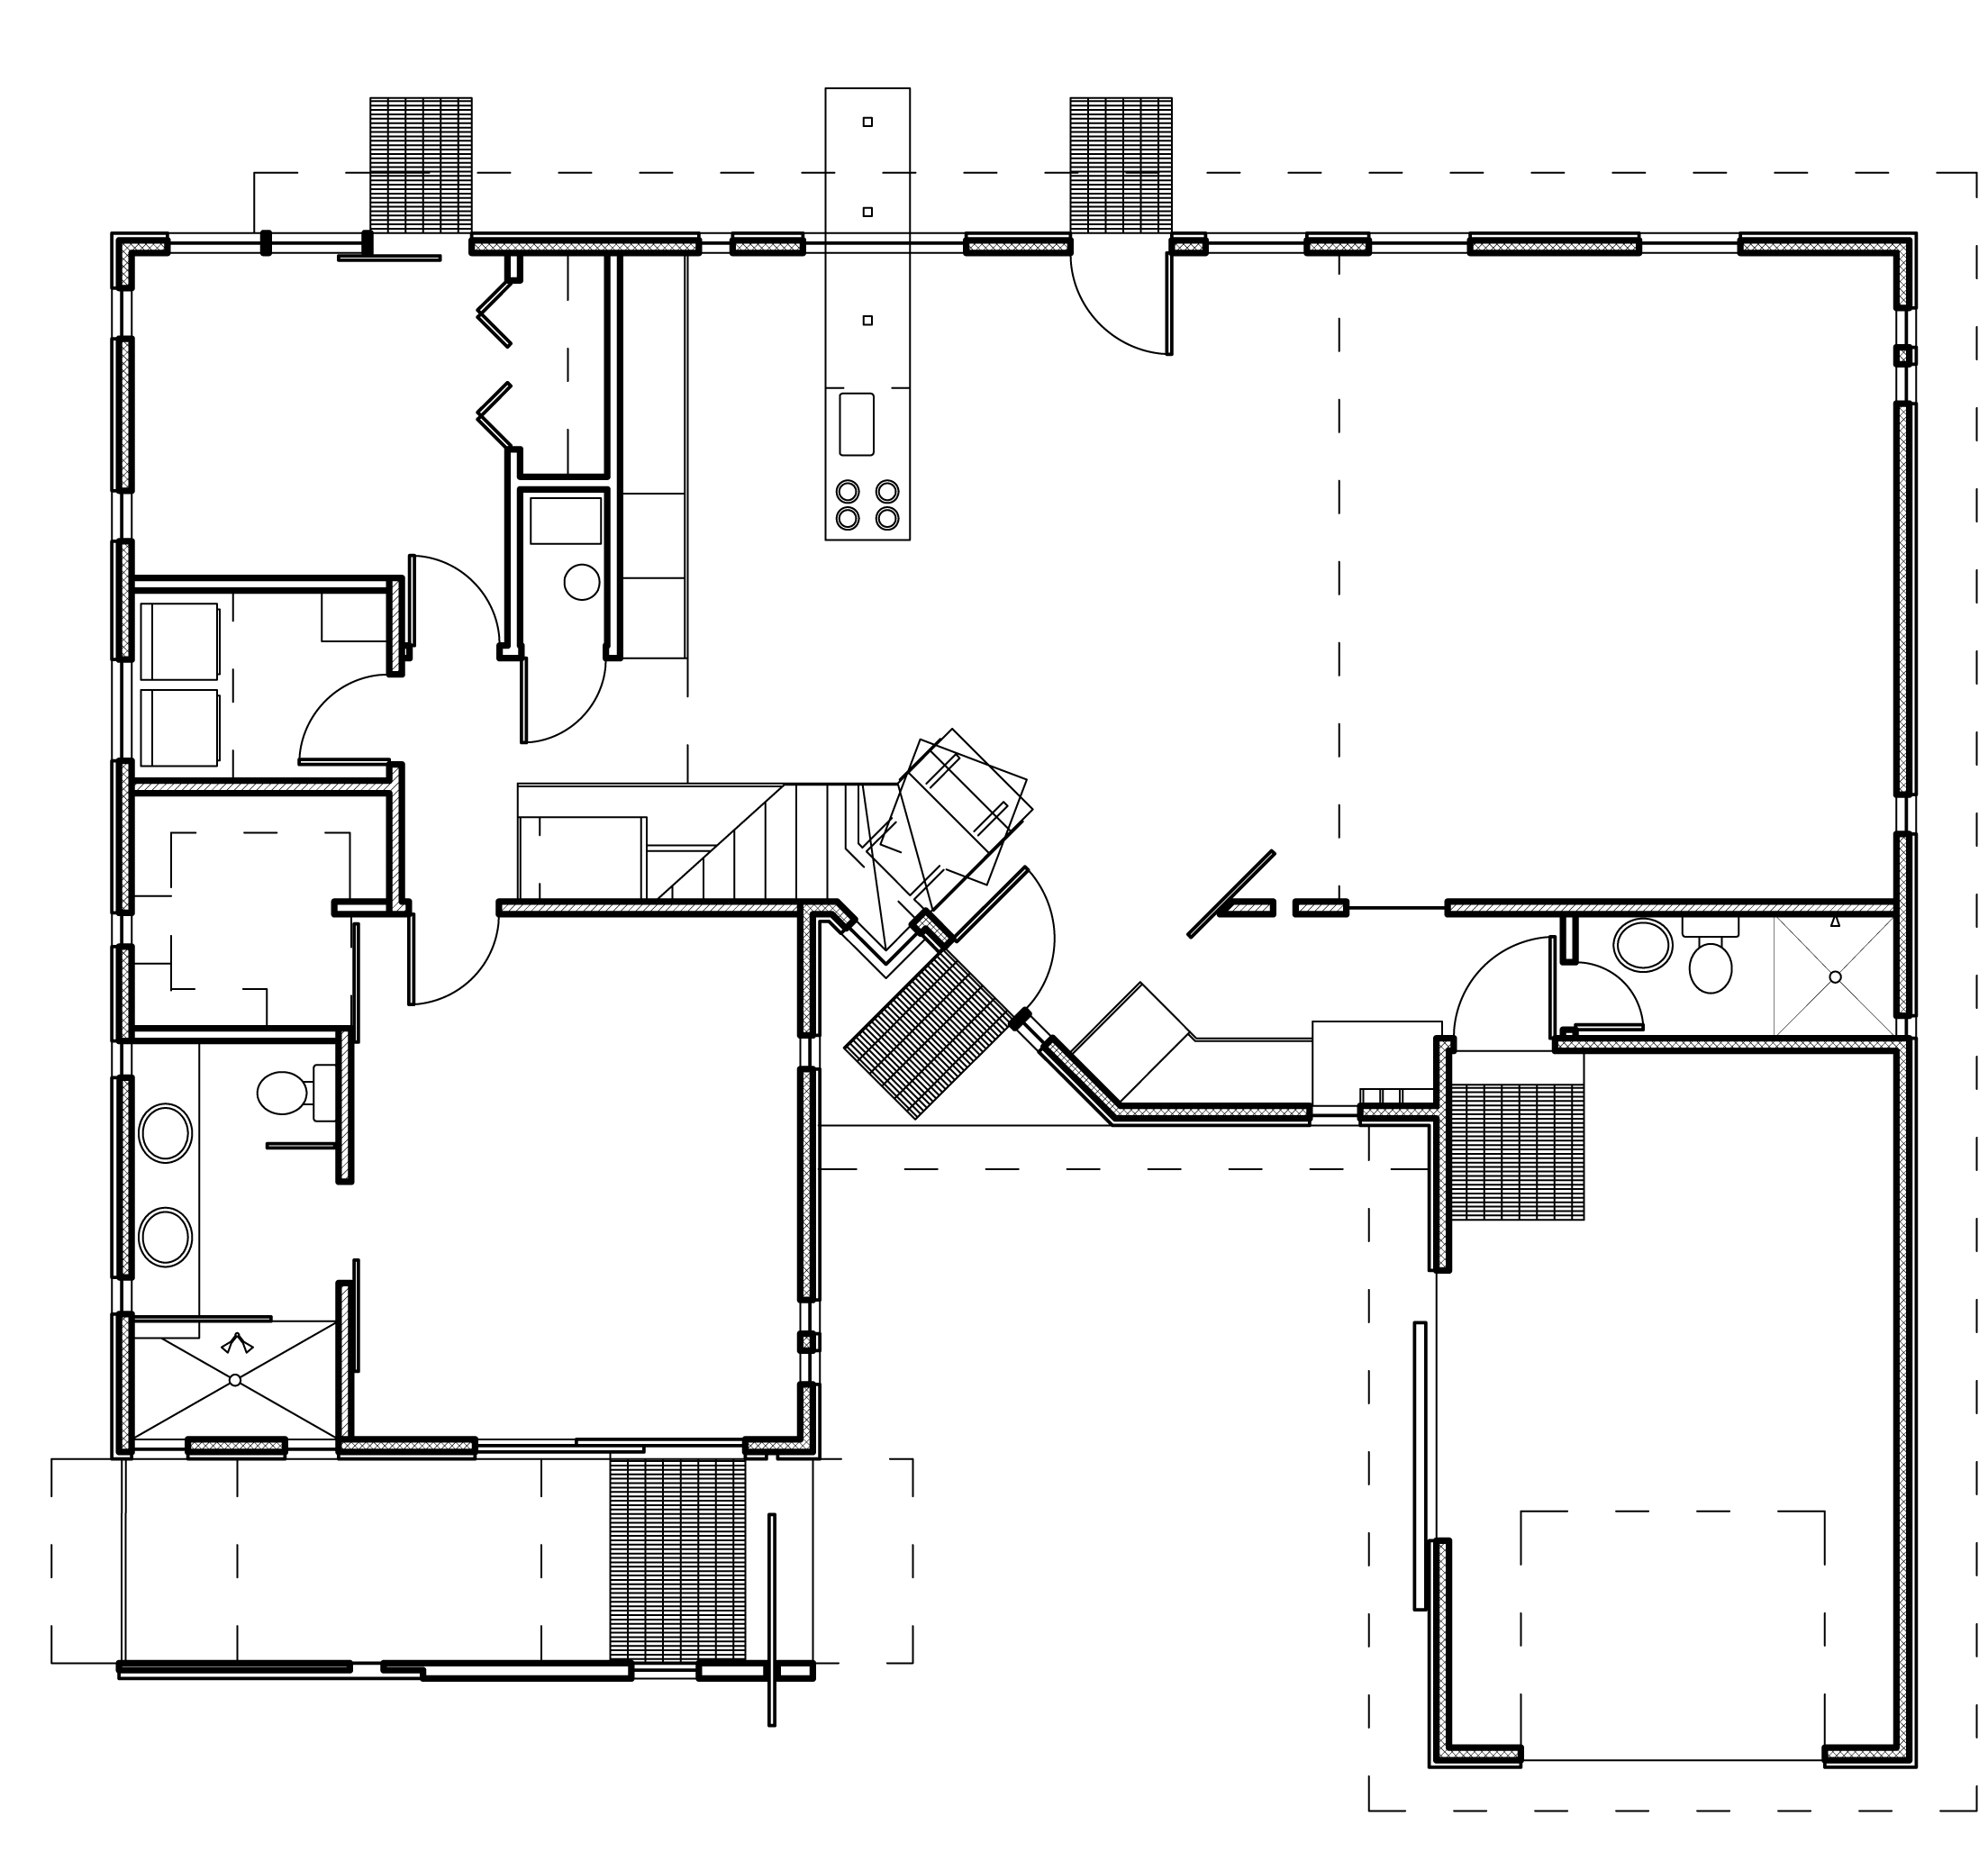 Modern house plans contemporary home designs floor plan 03 for Cool home designs